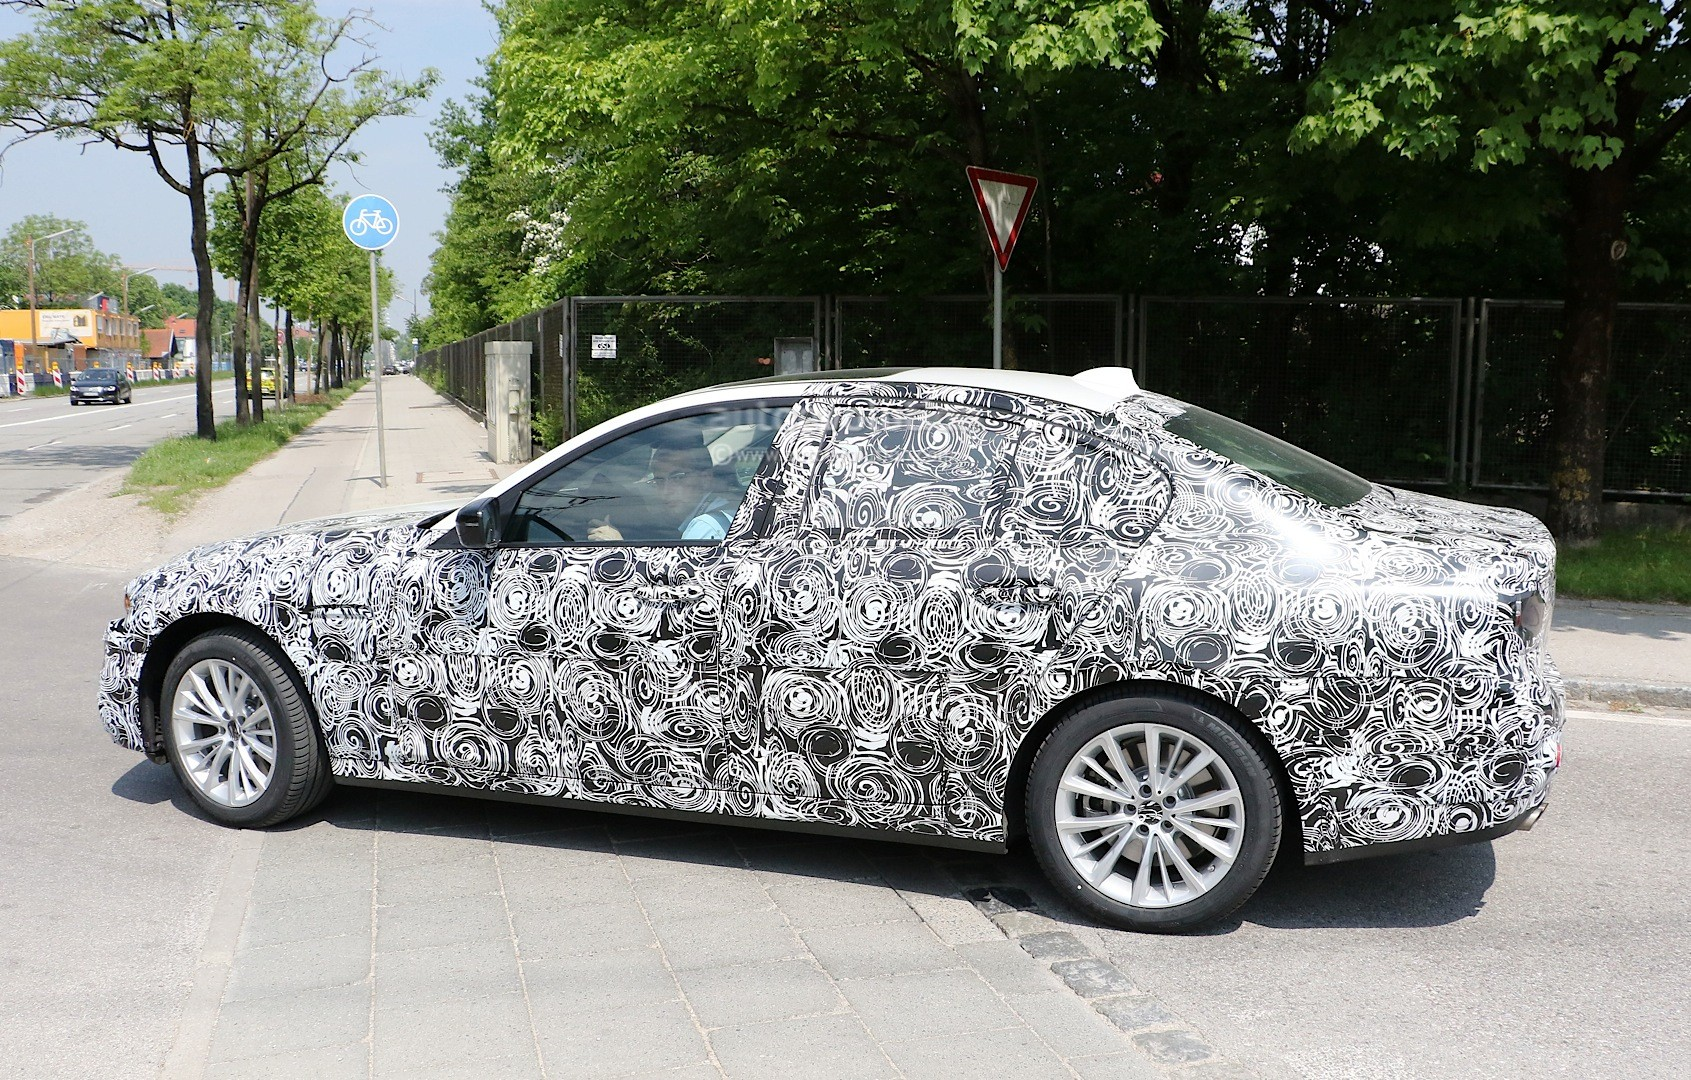 2017 - [BMW] M5 [F90] Spyshots-all-new-bmw-m5-g80-test-mule-or-5-series-m-performance-car_4